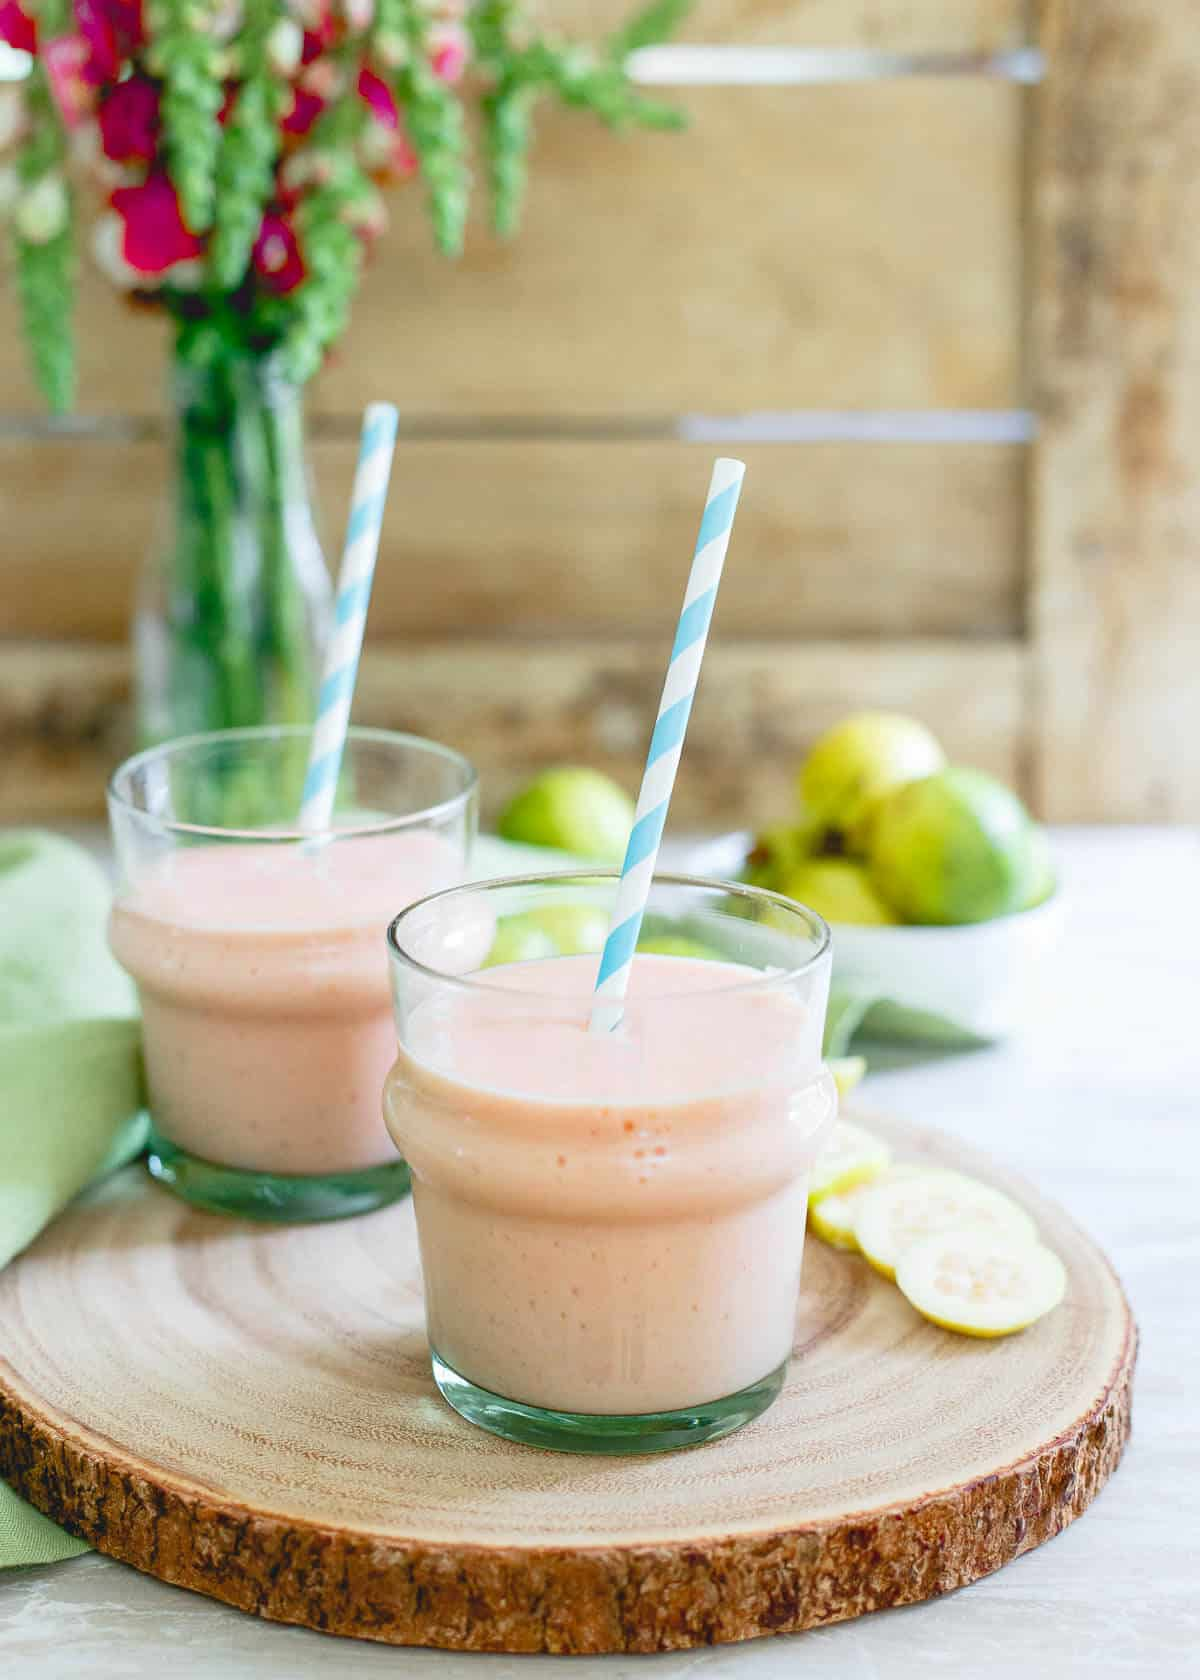 Guava Pineapple Smoothie - A Dairy-Free Refreshing Summer Drink